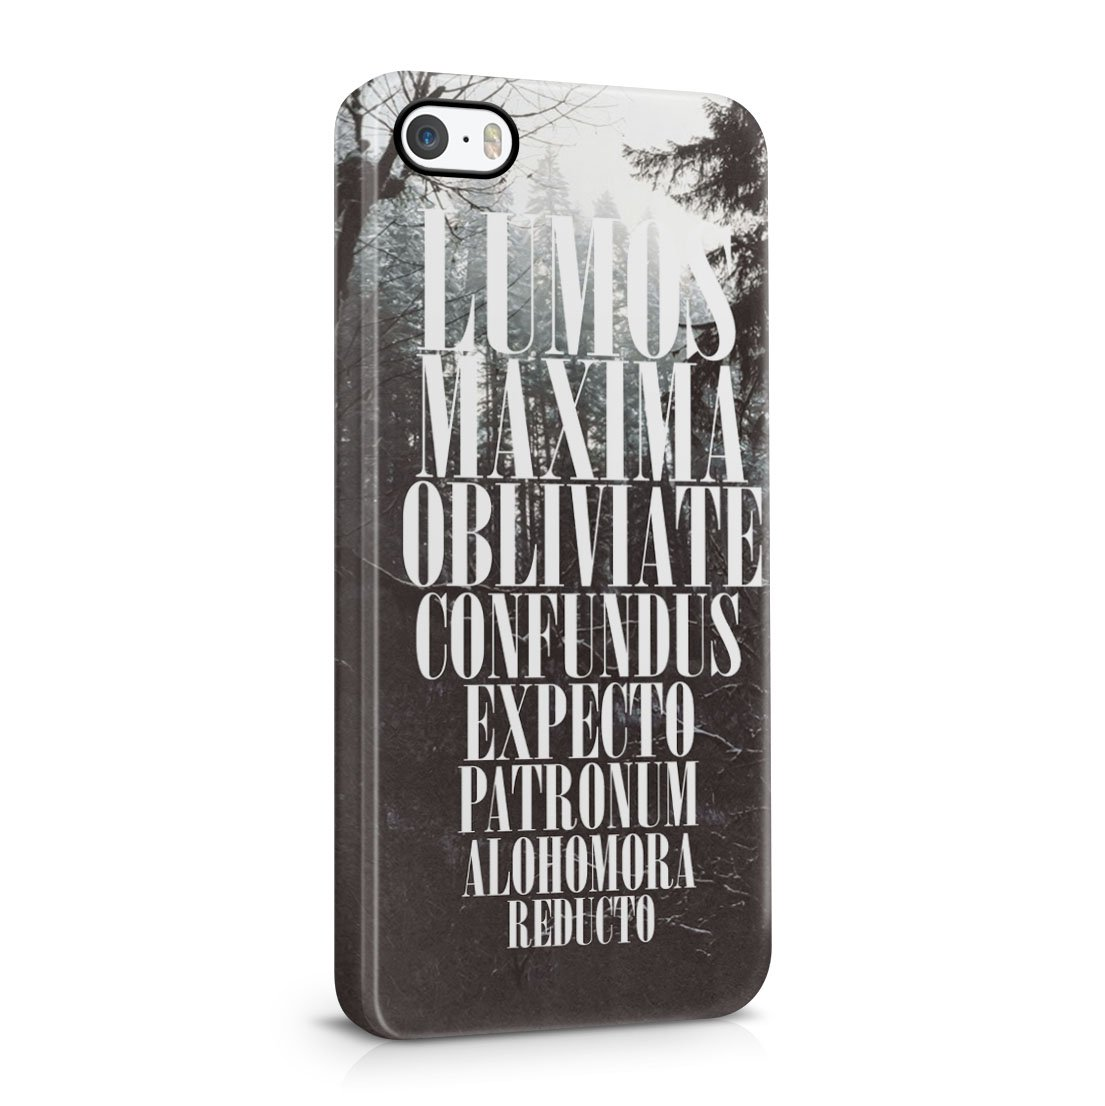 Harry Potter Expecto Patronum Spell iPhone 5 / 5S Hard Plastic Phone Case Cover